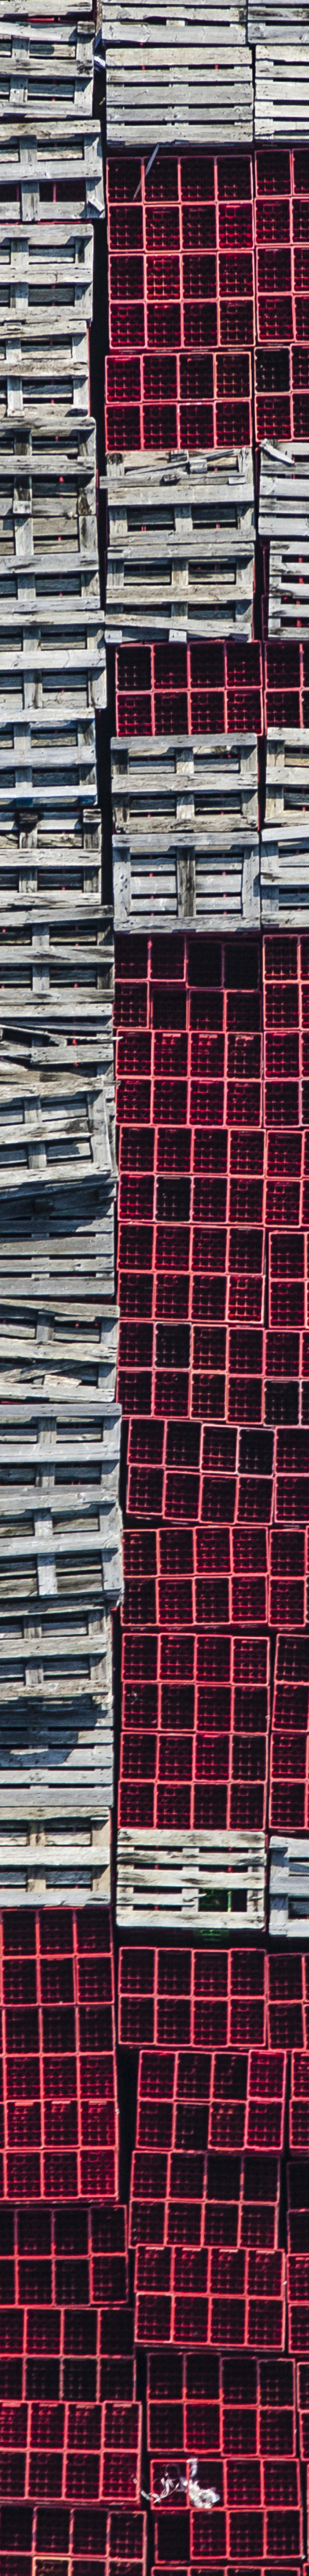 Aerial view of the storage area for beverage crates next to a brewery - Klaus Leidorf Aerial Photography